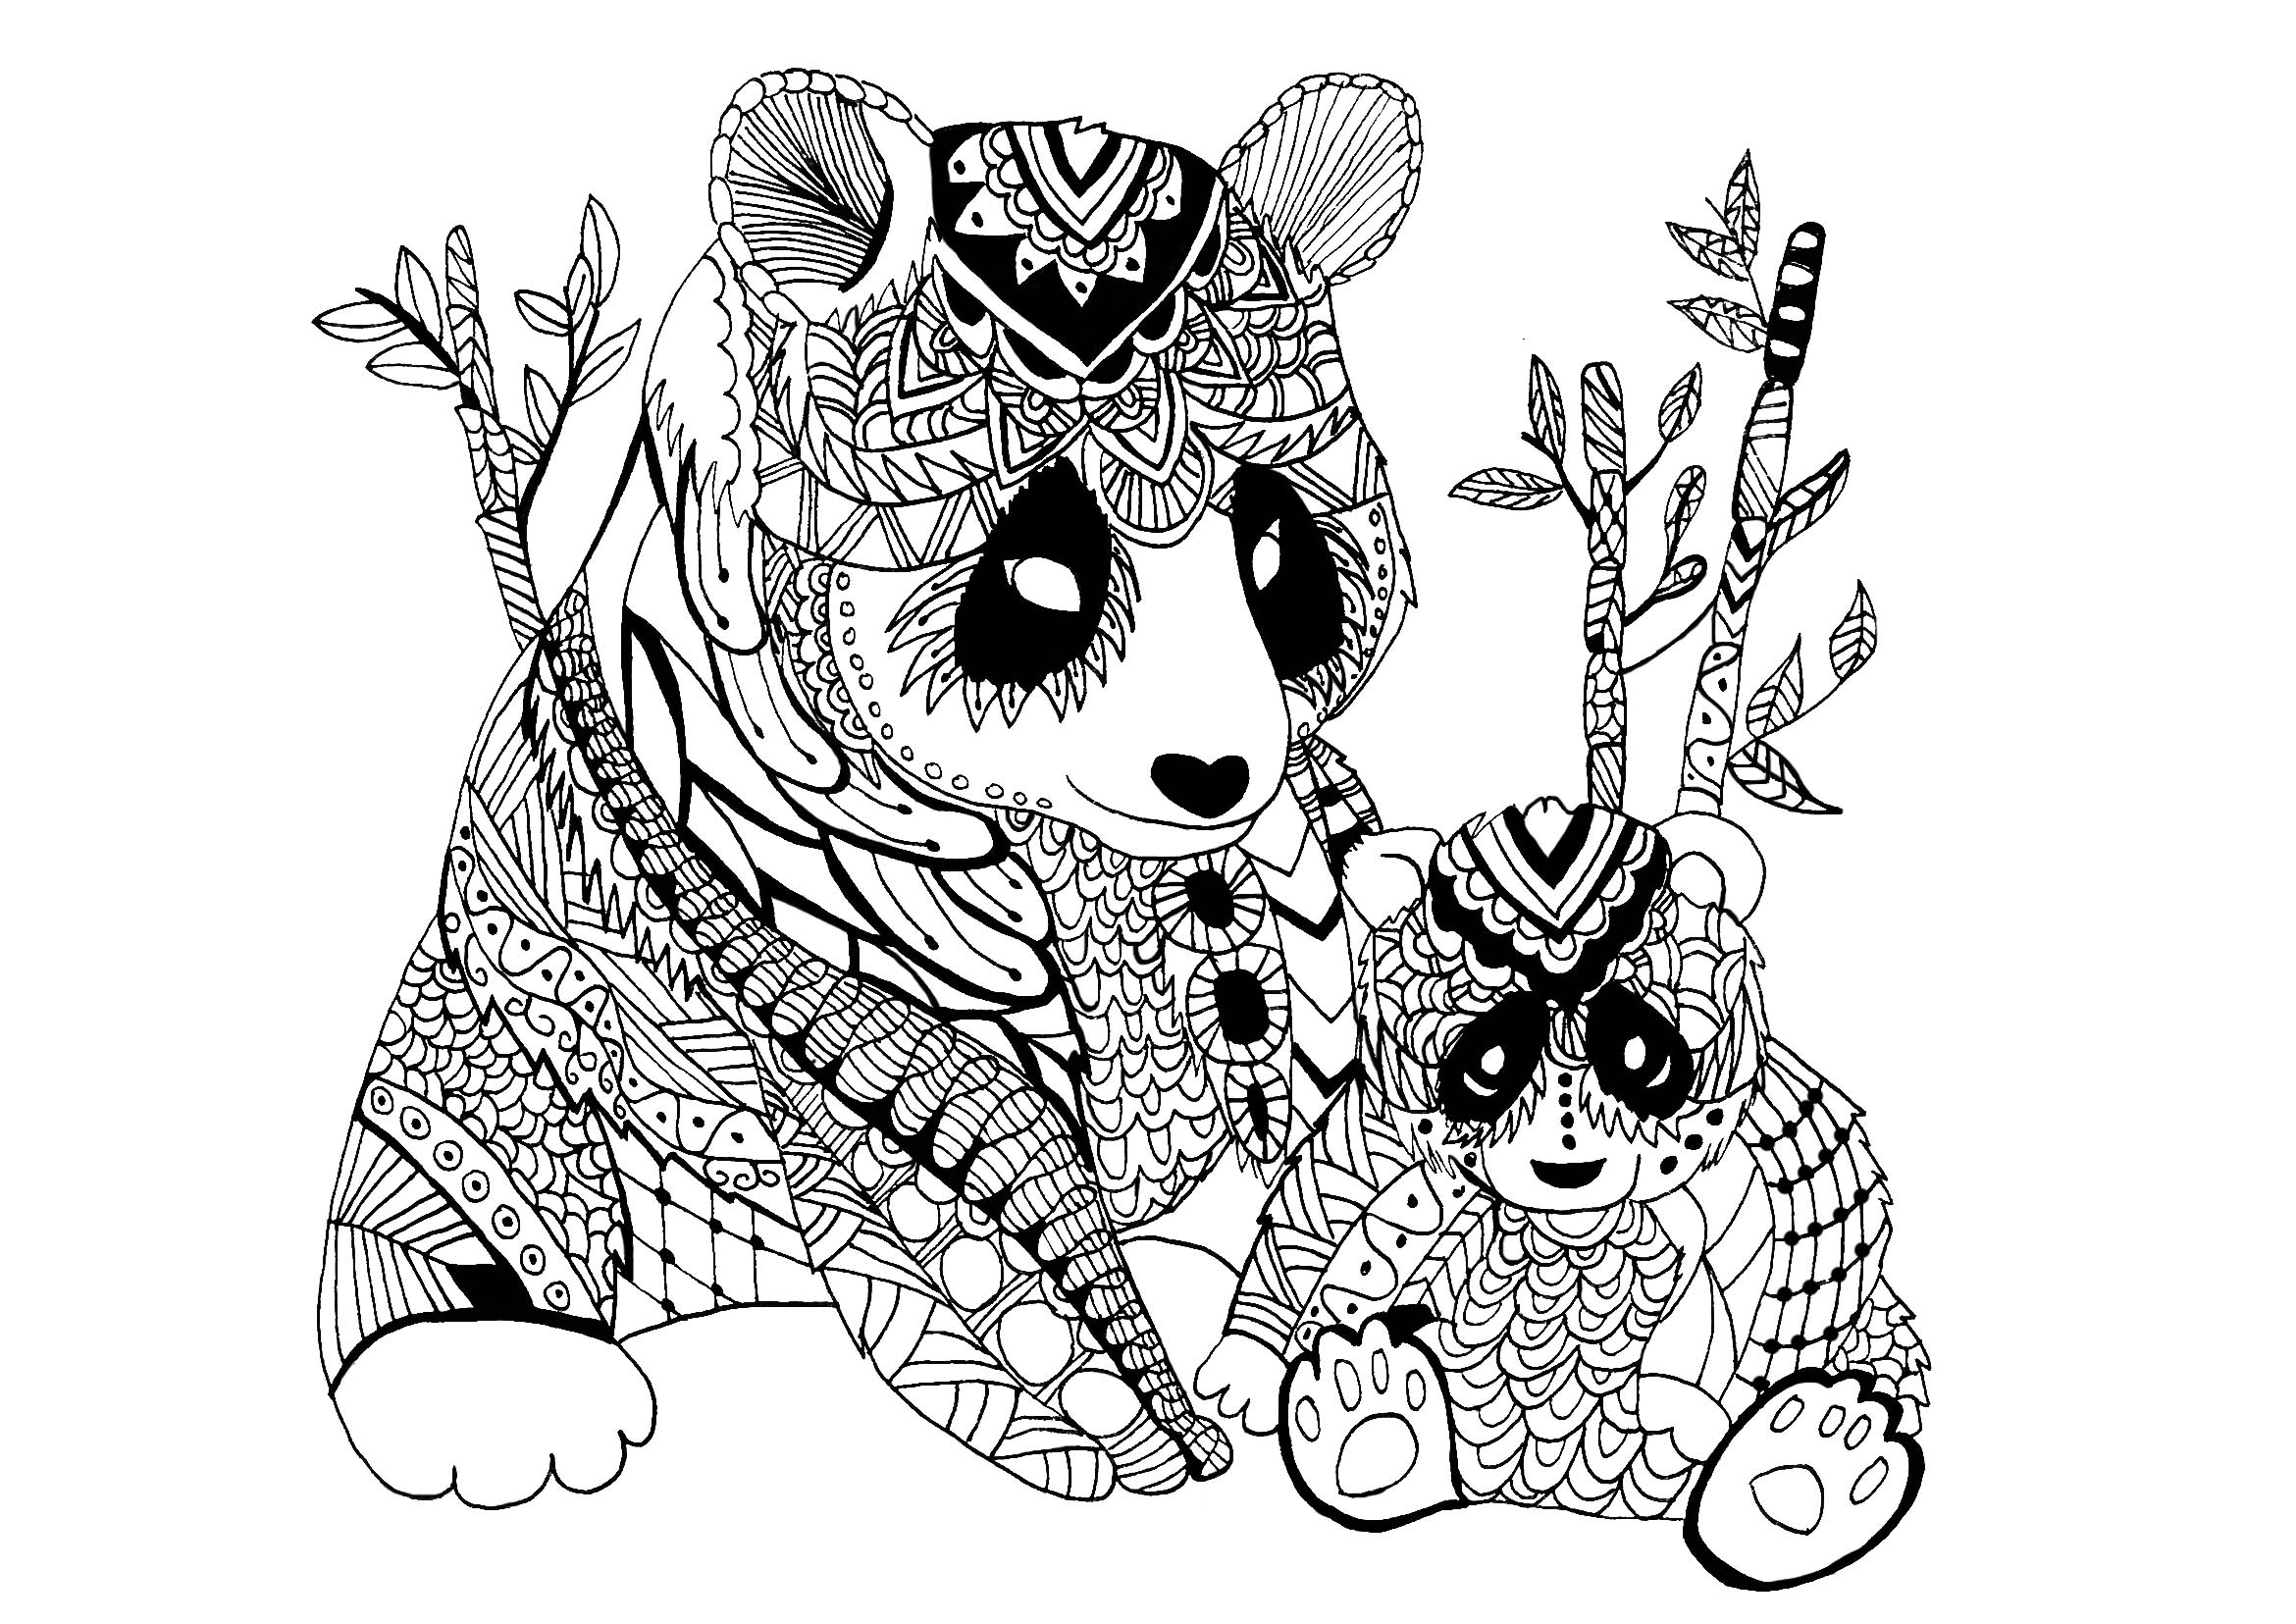 zentangle coloring pages free zentangle coloring pages printable at getcoloringscom pages zentangle free coloring